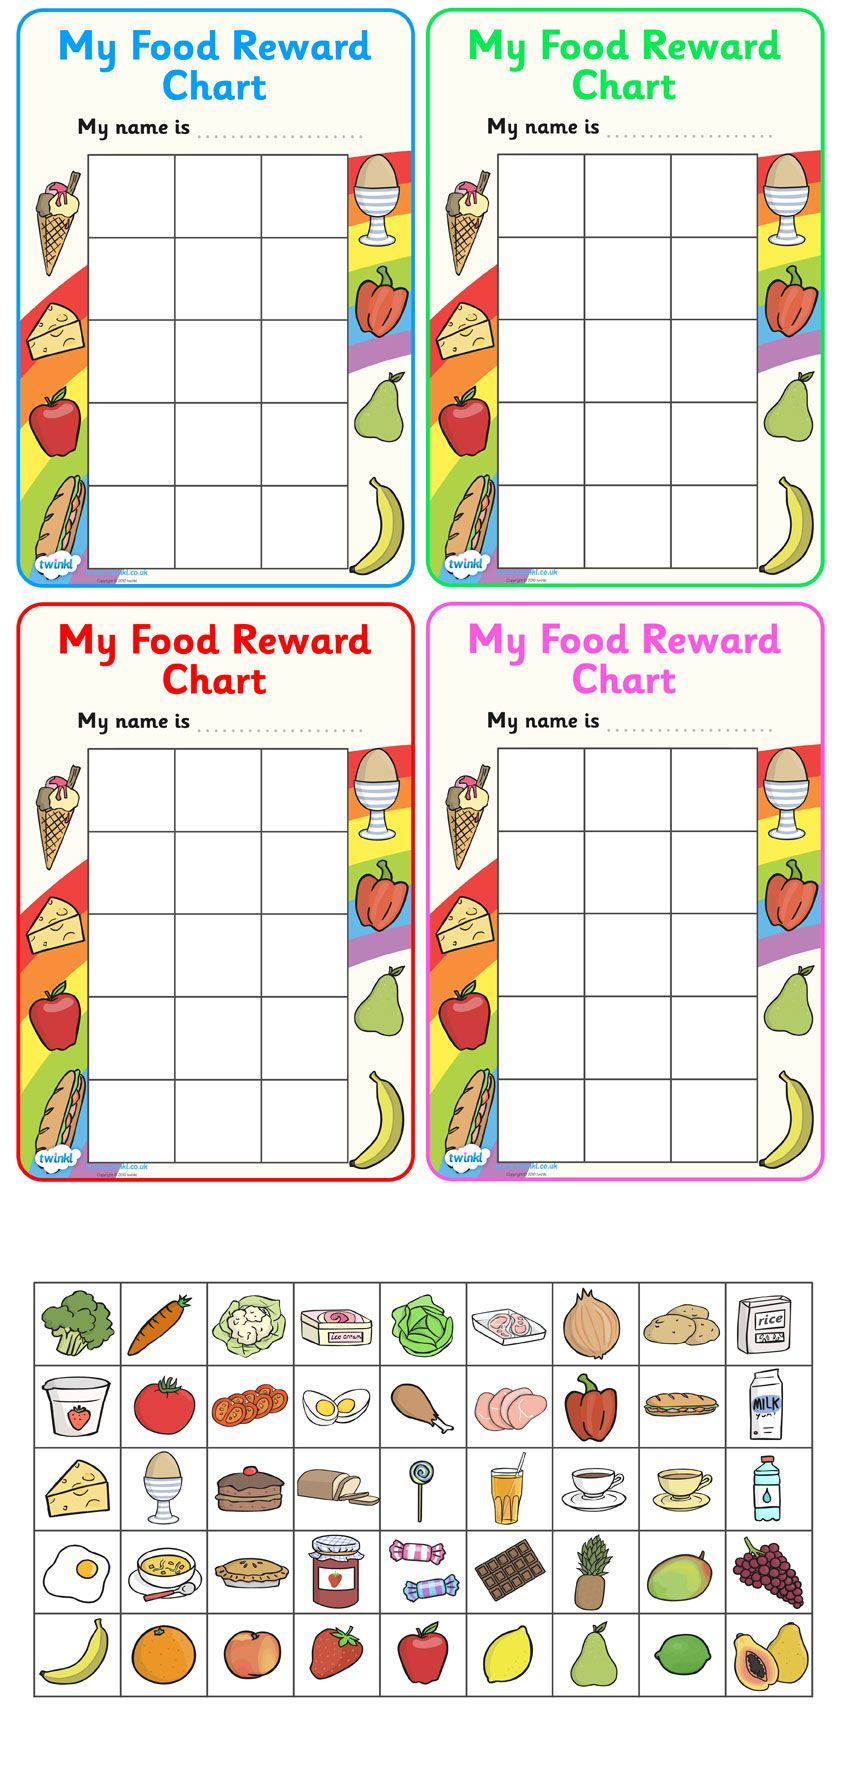 Twinkl resources   my food reward chart classroom printables for pre school kindergarten primary and beyond good eating also rh pinterest